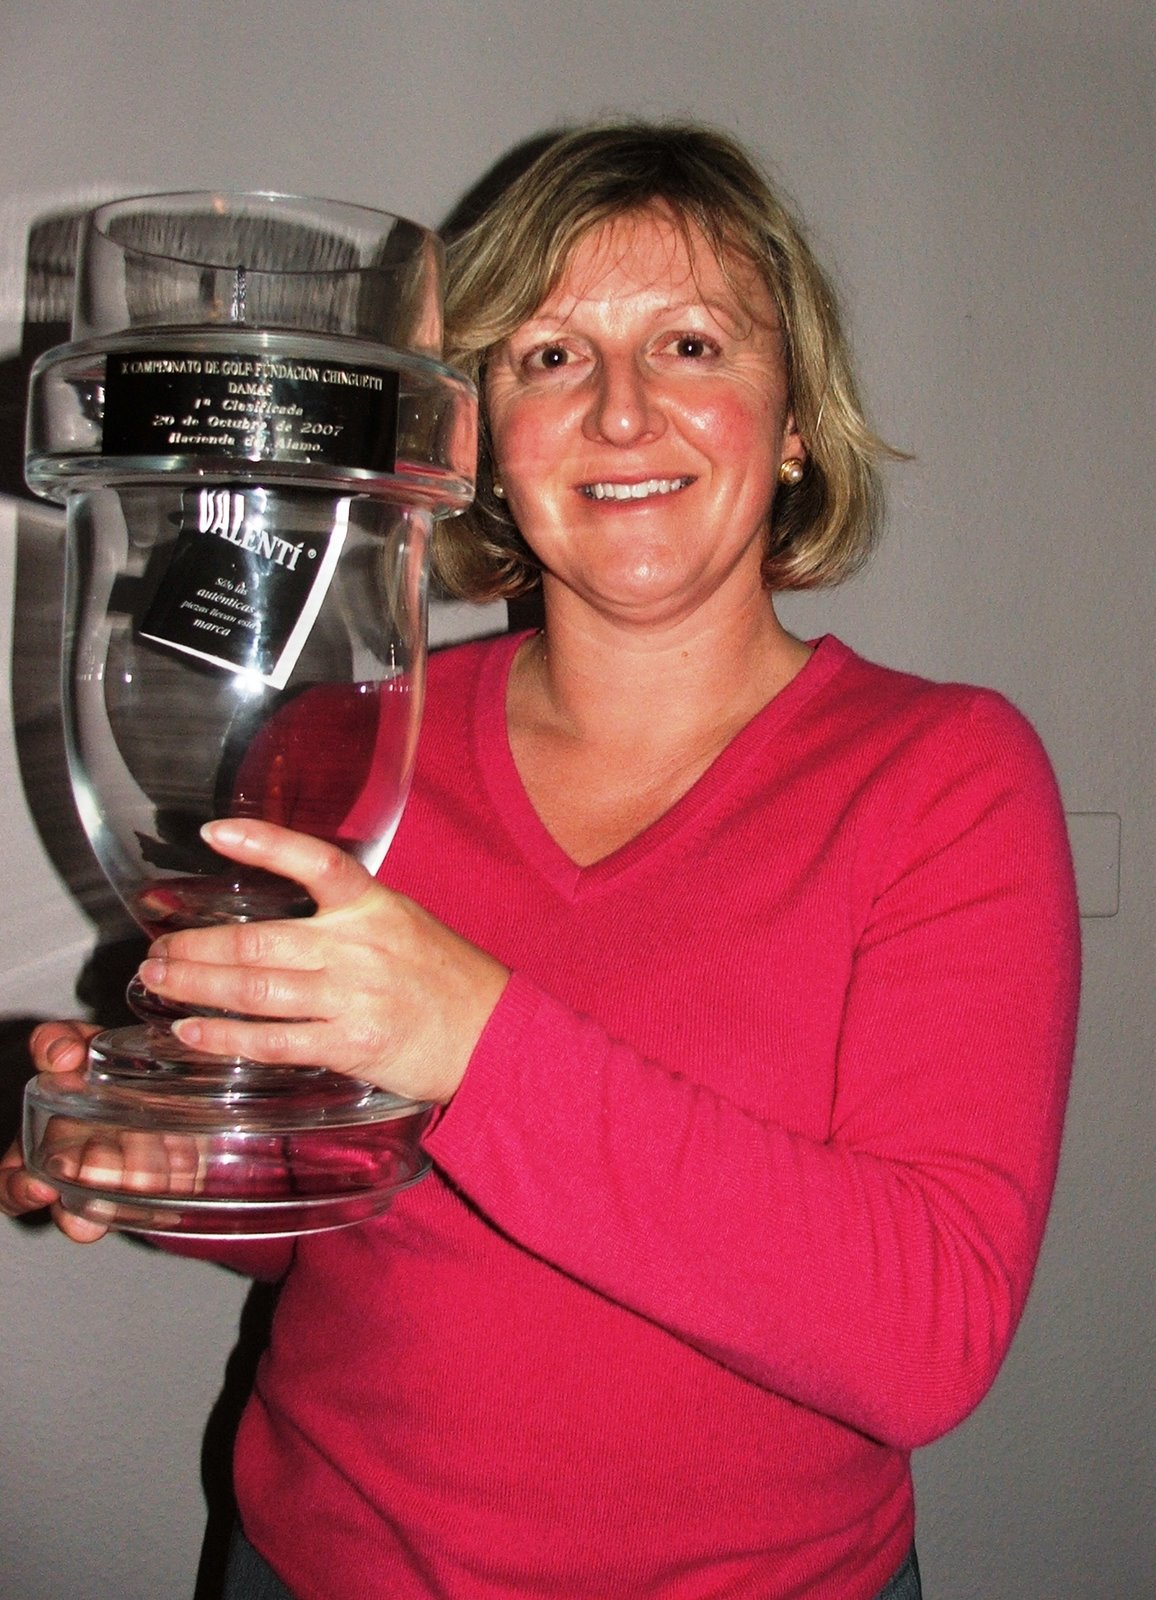 ... back the clock to her glory days as an amateur international golfer, ...